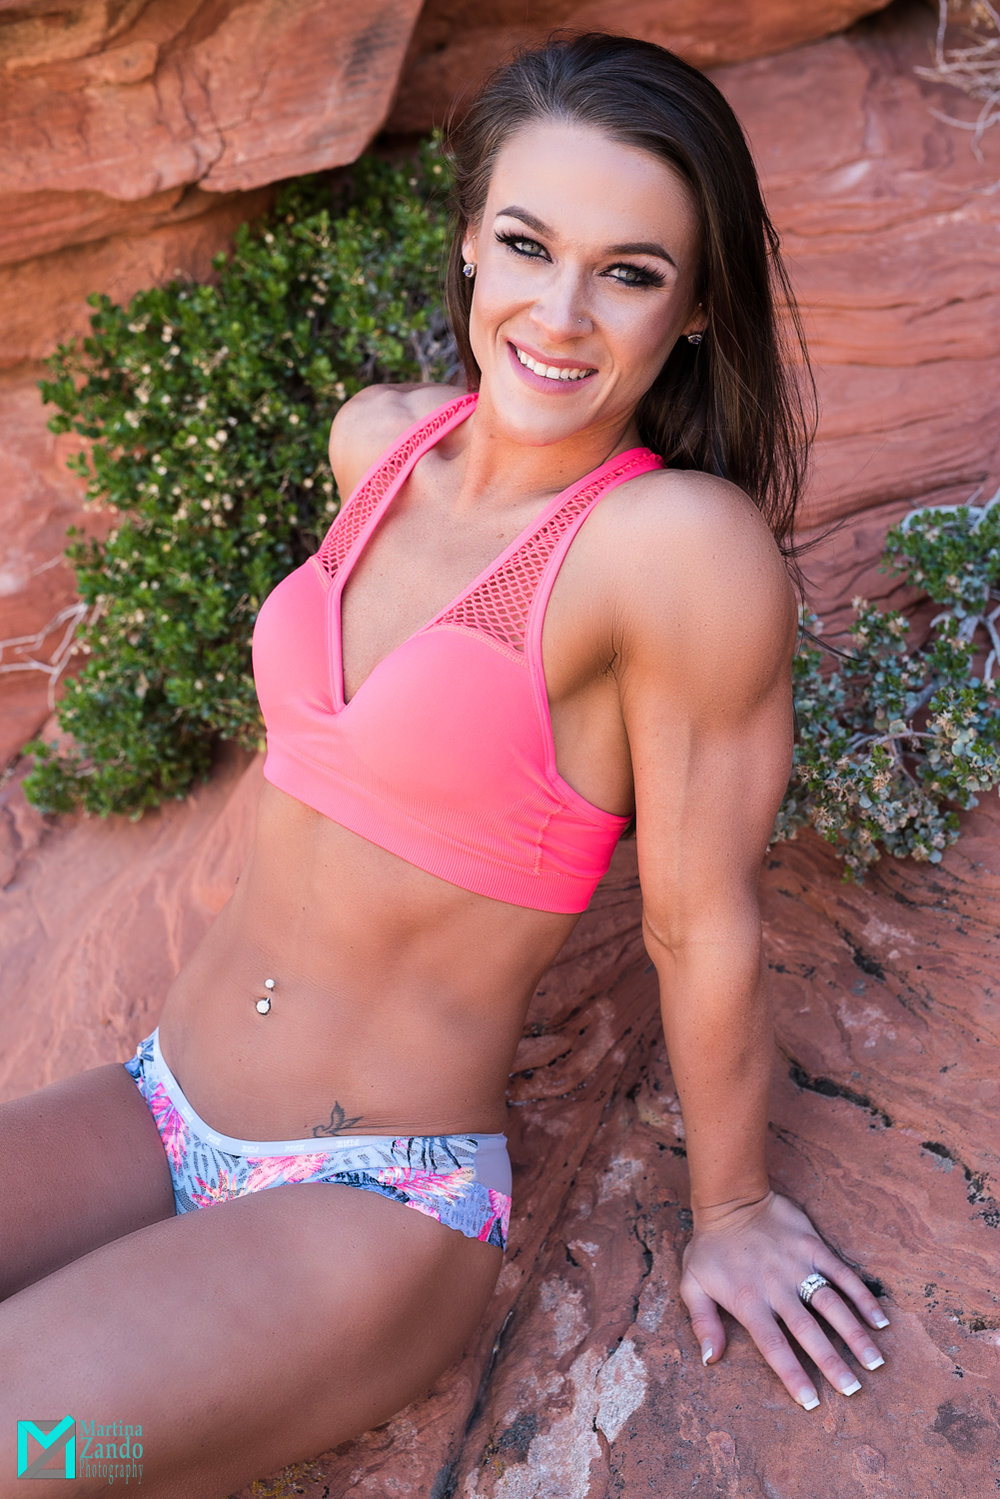 Martina_Zando_Photography__Las_Vegas_Fitness-4.jpg